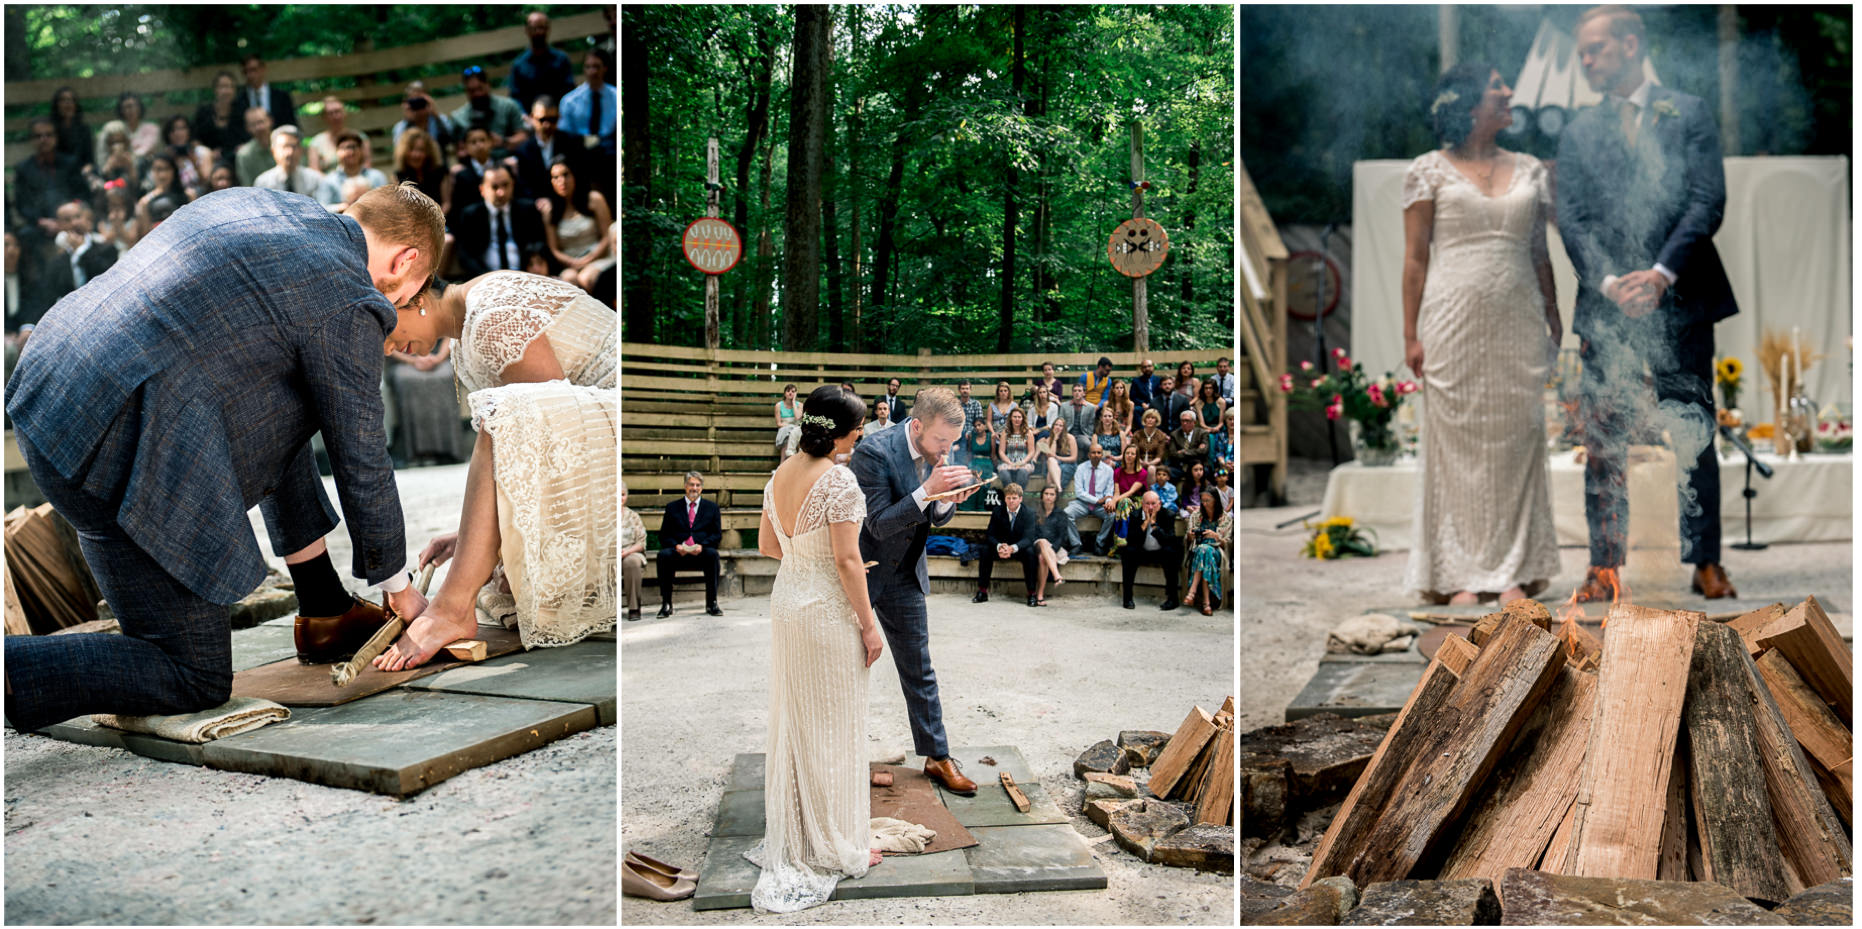 bride and groom rubbing sticks together to build fire during wedding ceremony